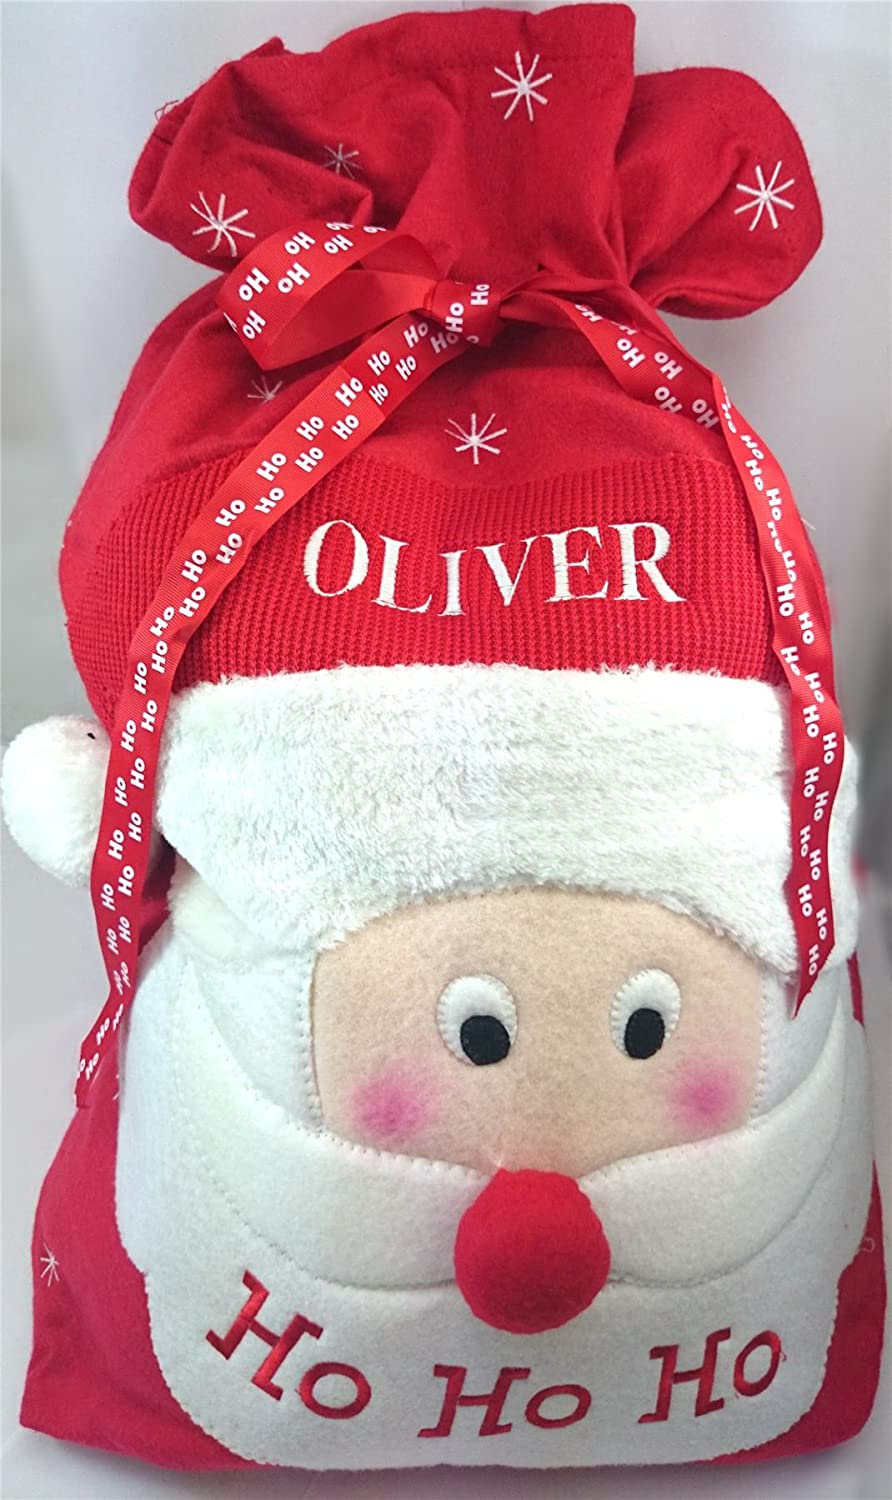 Personalised Embroidered Large Christmas Present Deluxe Santa Sack Boys  Girls Gift Bag Stocking Toy Tree: Amazon.co.uk: Kitchen & Home